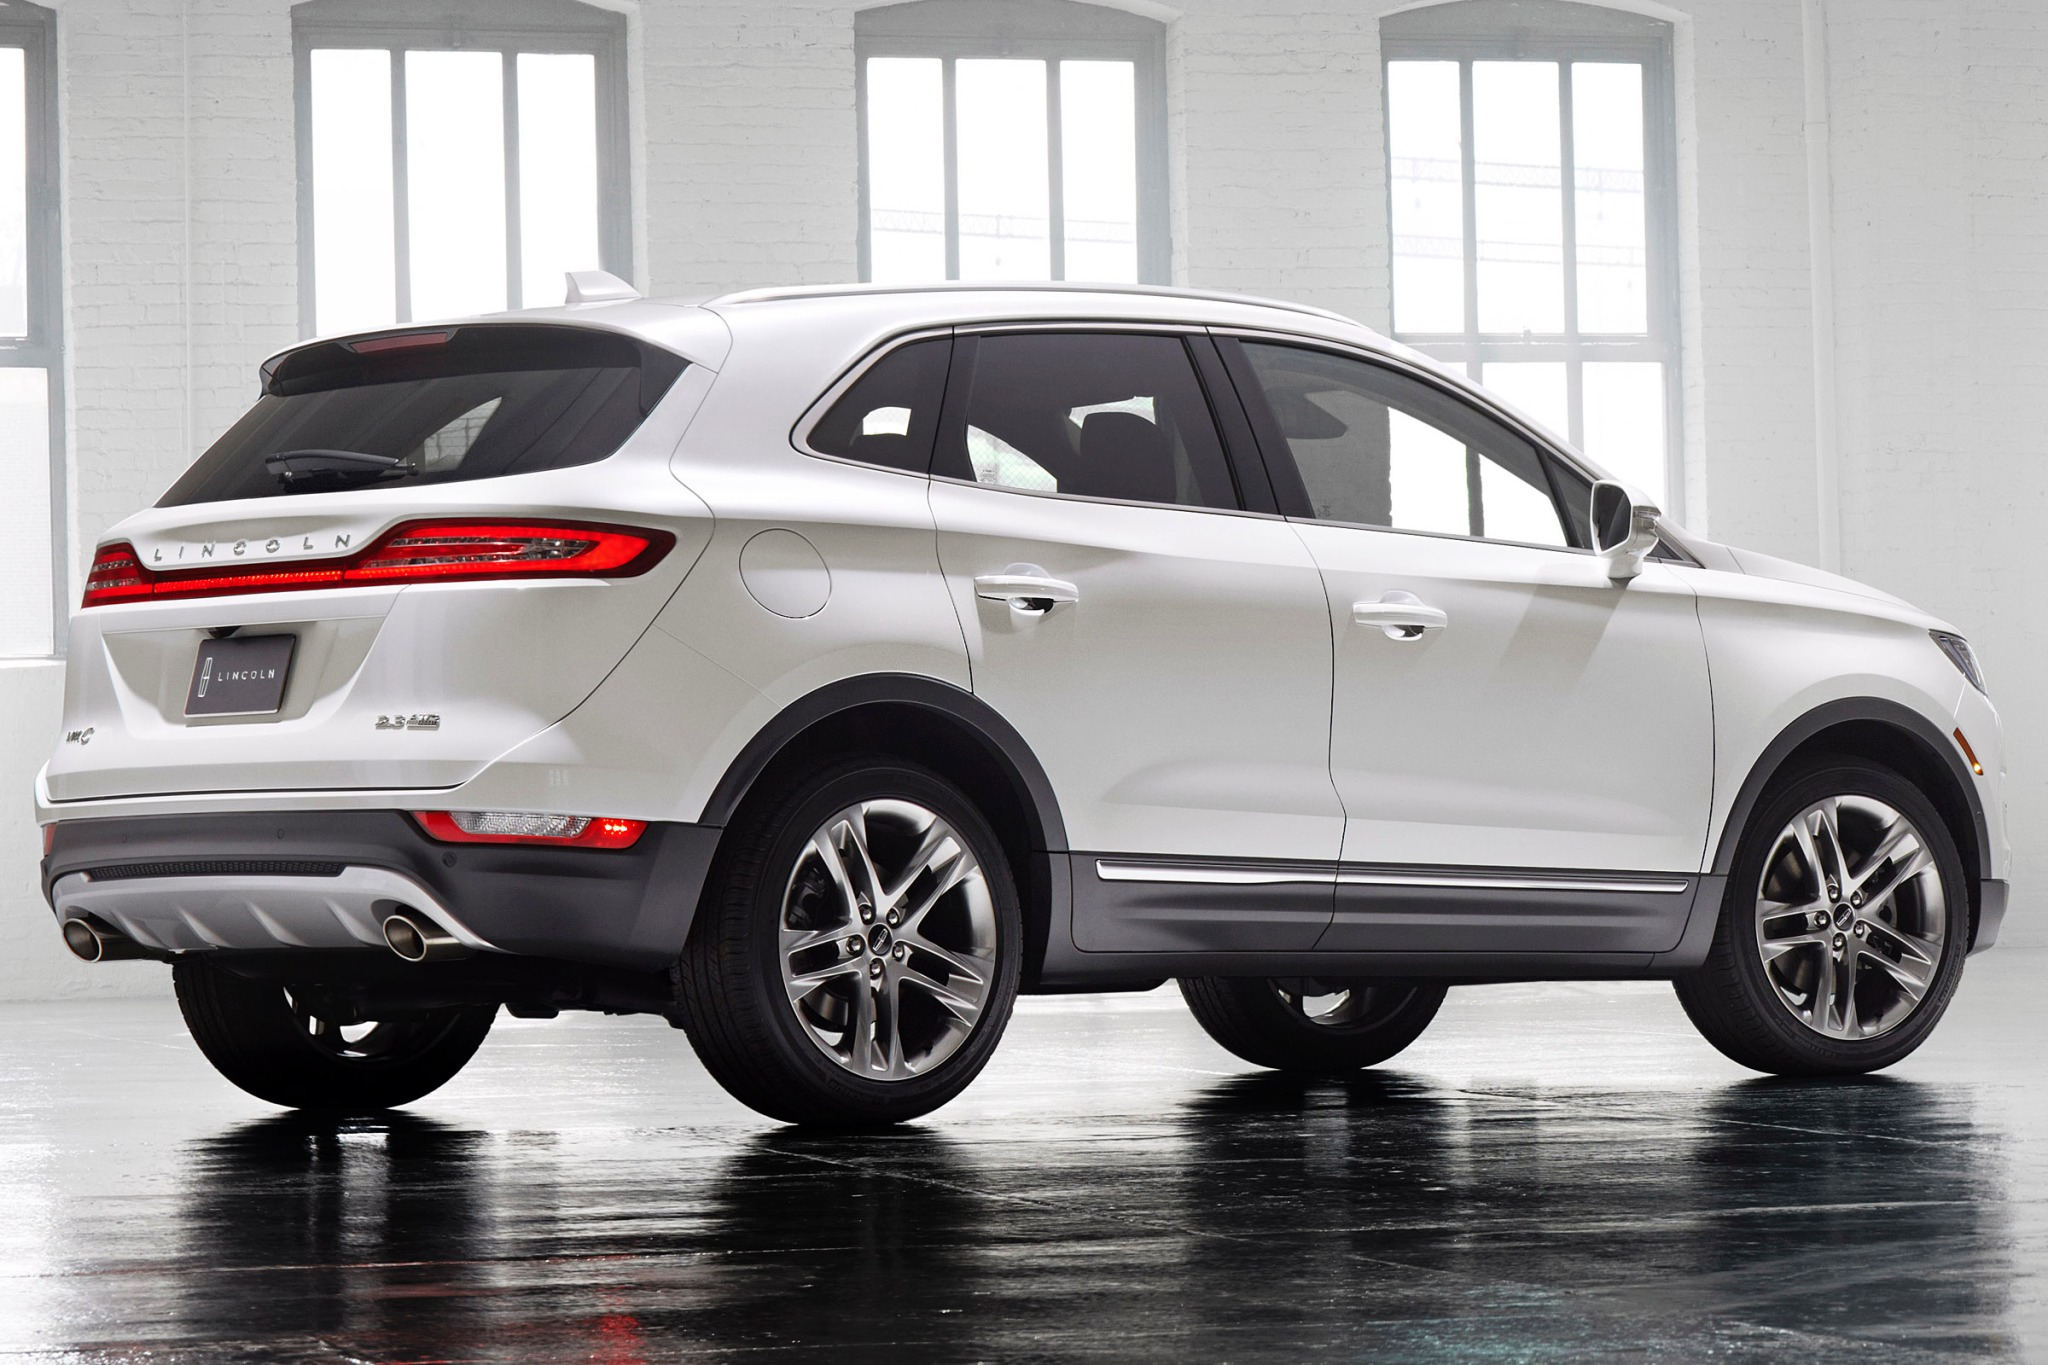 2015 Lincoln MKC 4dr SUV  exterior #7